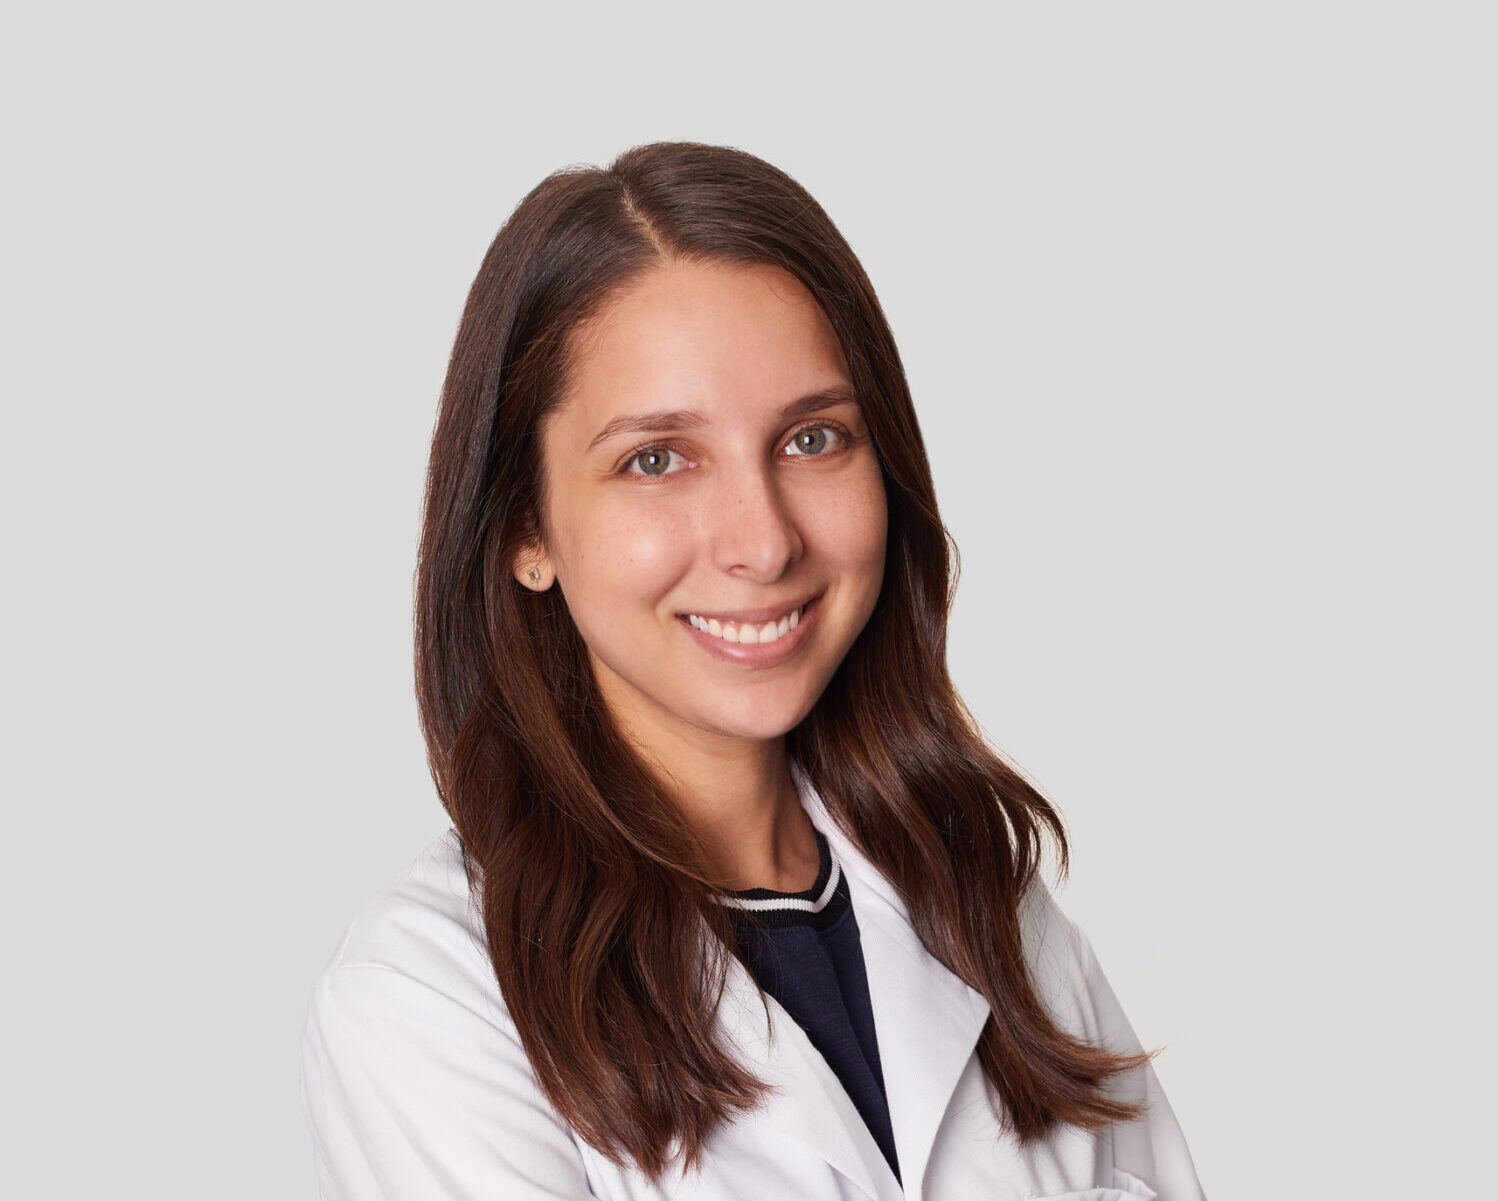 Dr. Mariel Covo of the Animal Medical Center of New York City